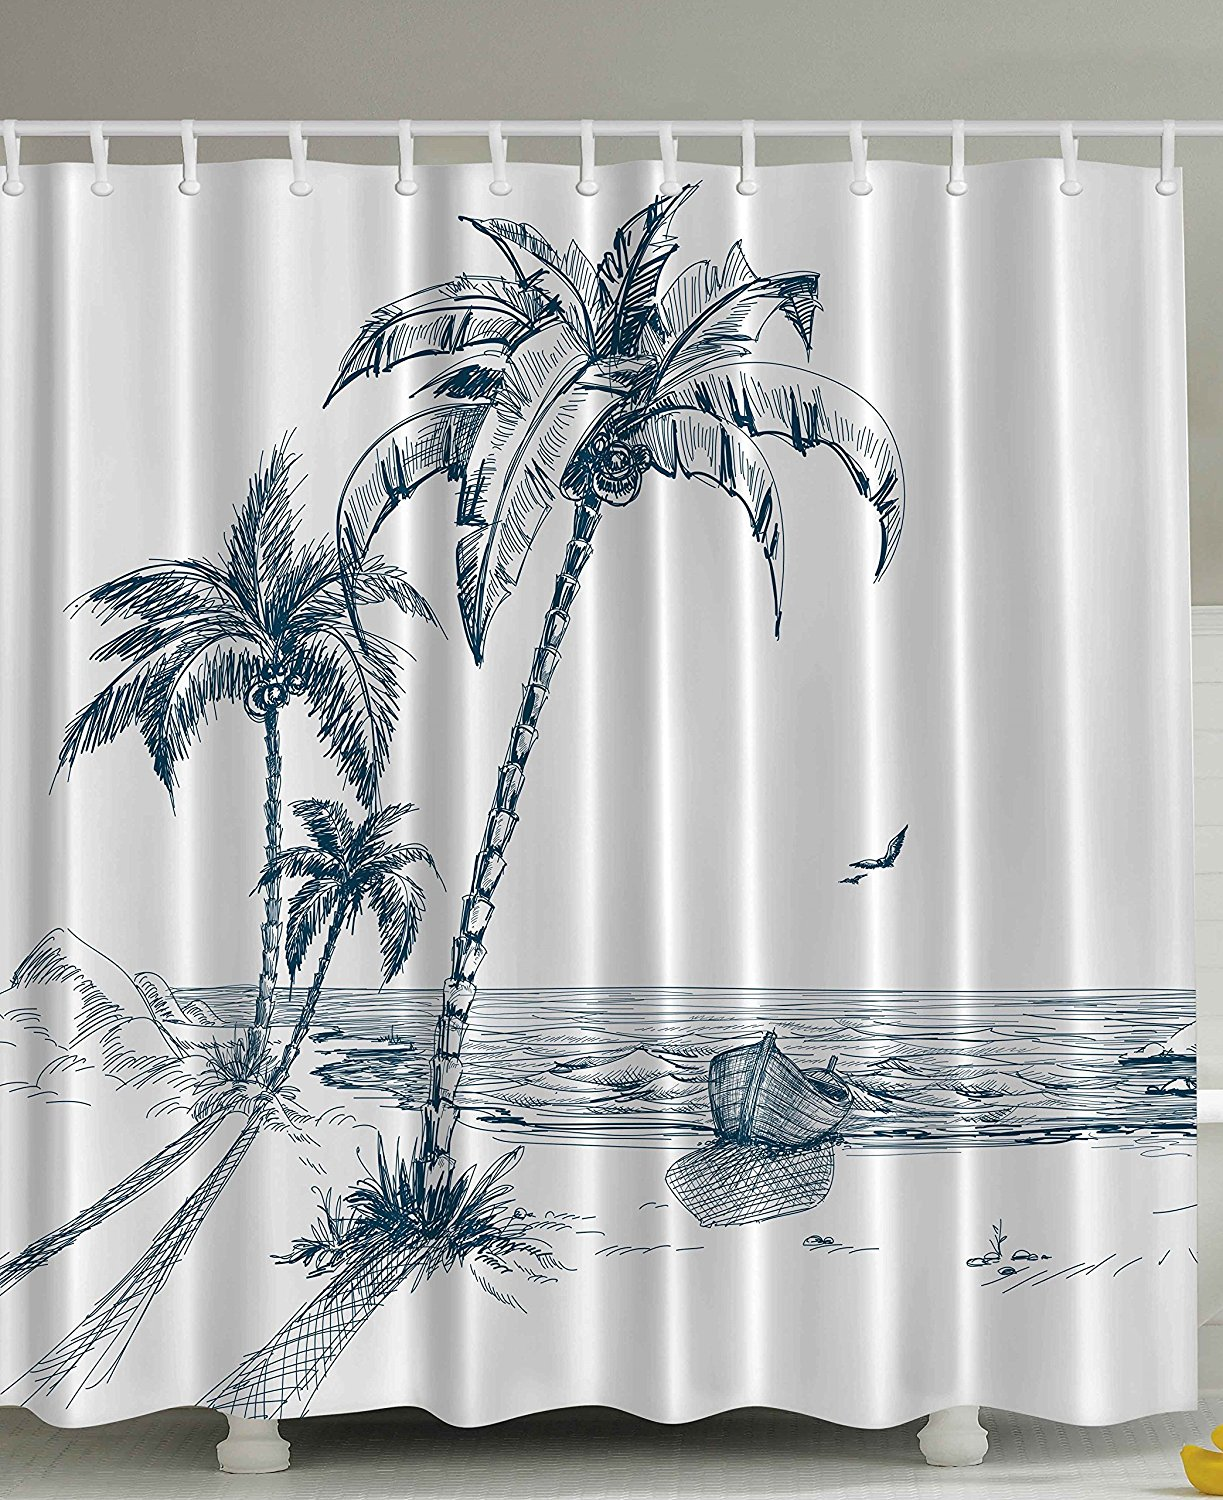 Us 16 01 11 Off Memory Home Nautical Shower Curtain Palms Beach Tropical Decor Shadow Wooden Boat Ocean Waves Rocks Desert Island Design Fabric In